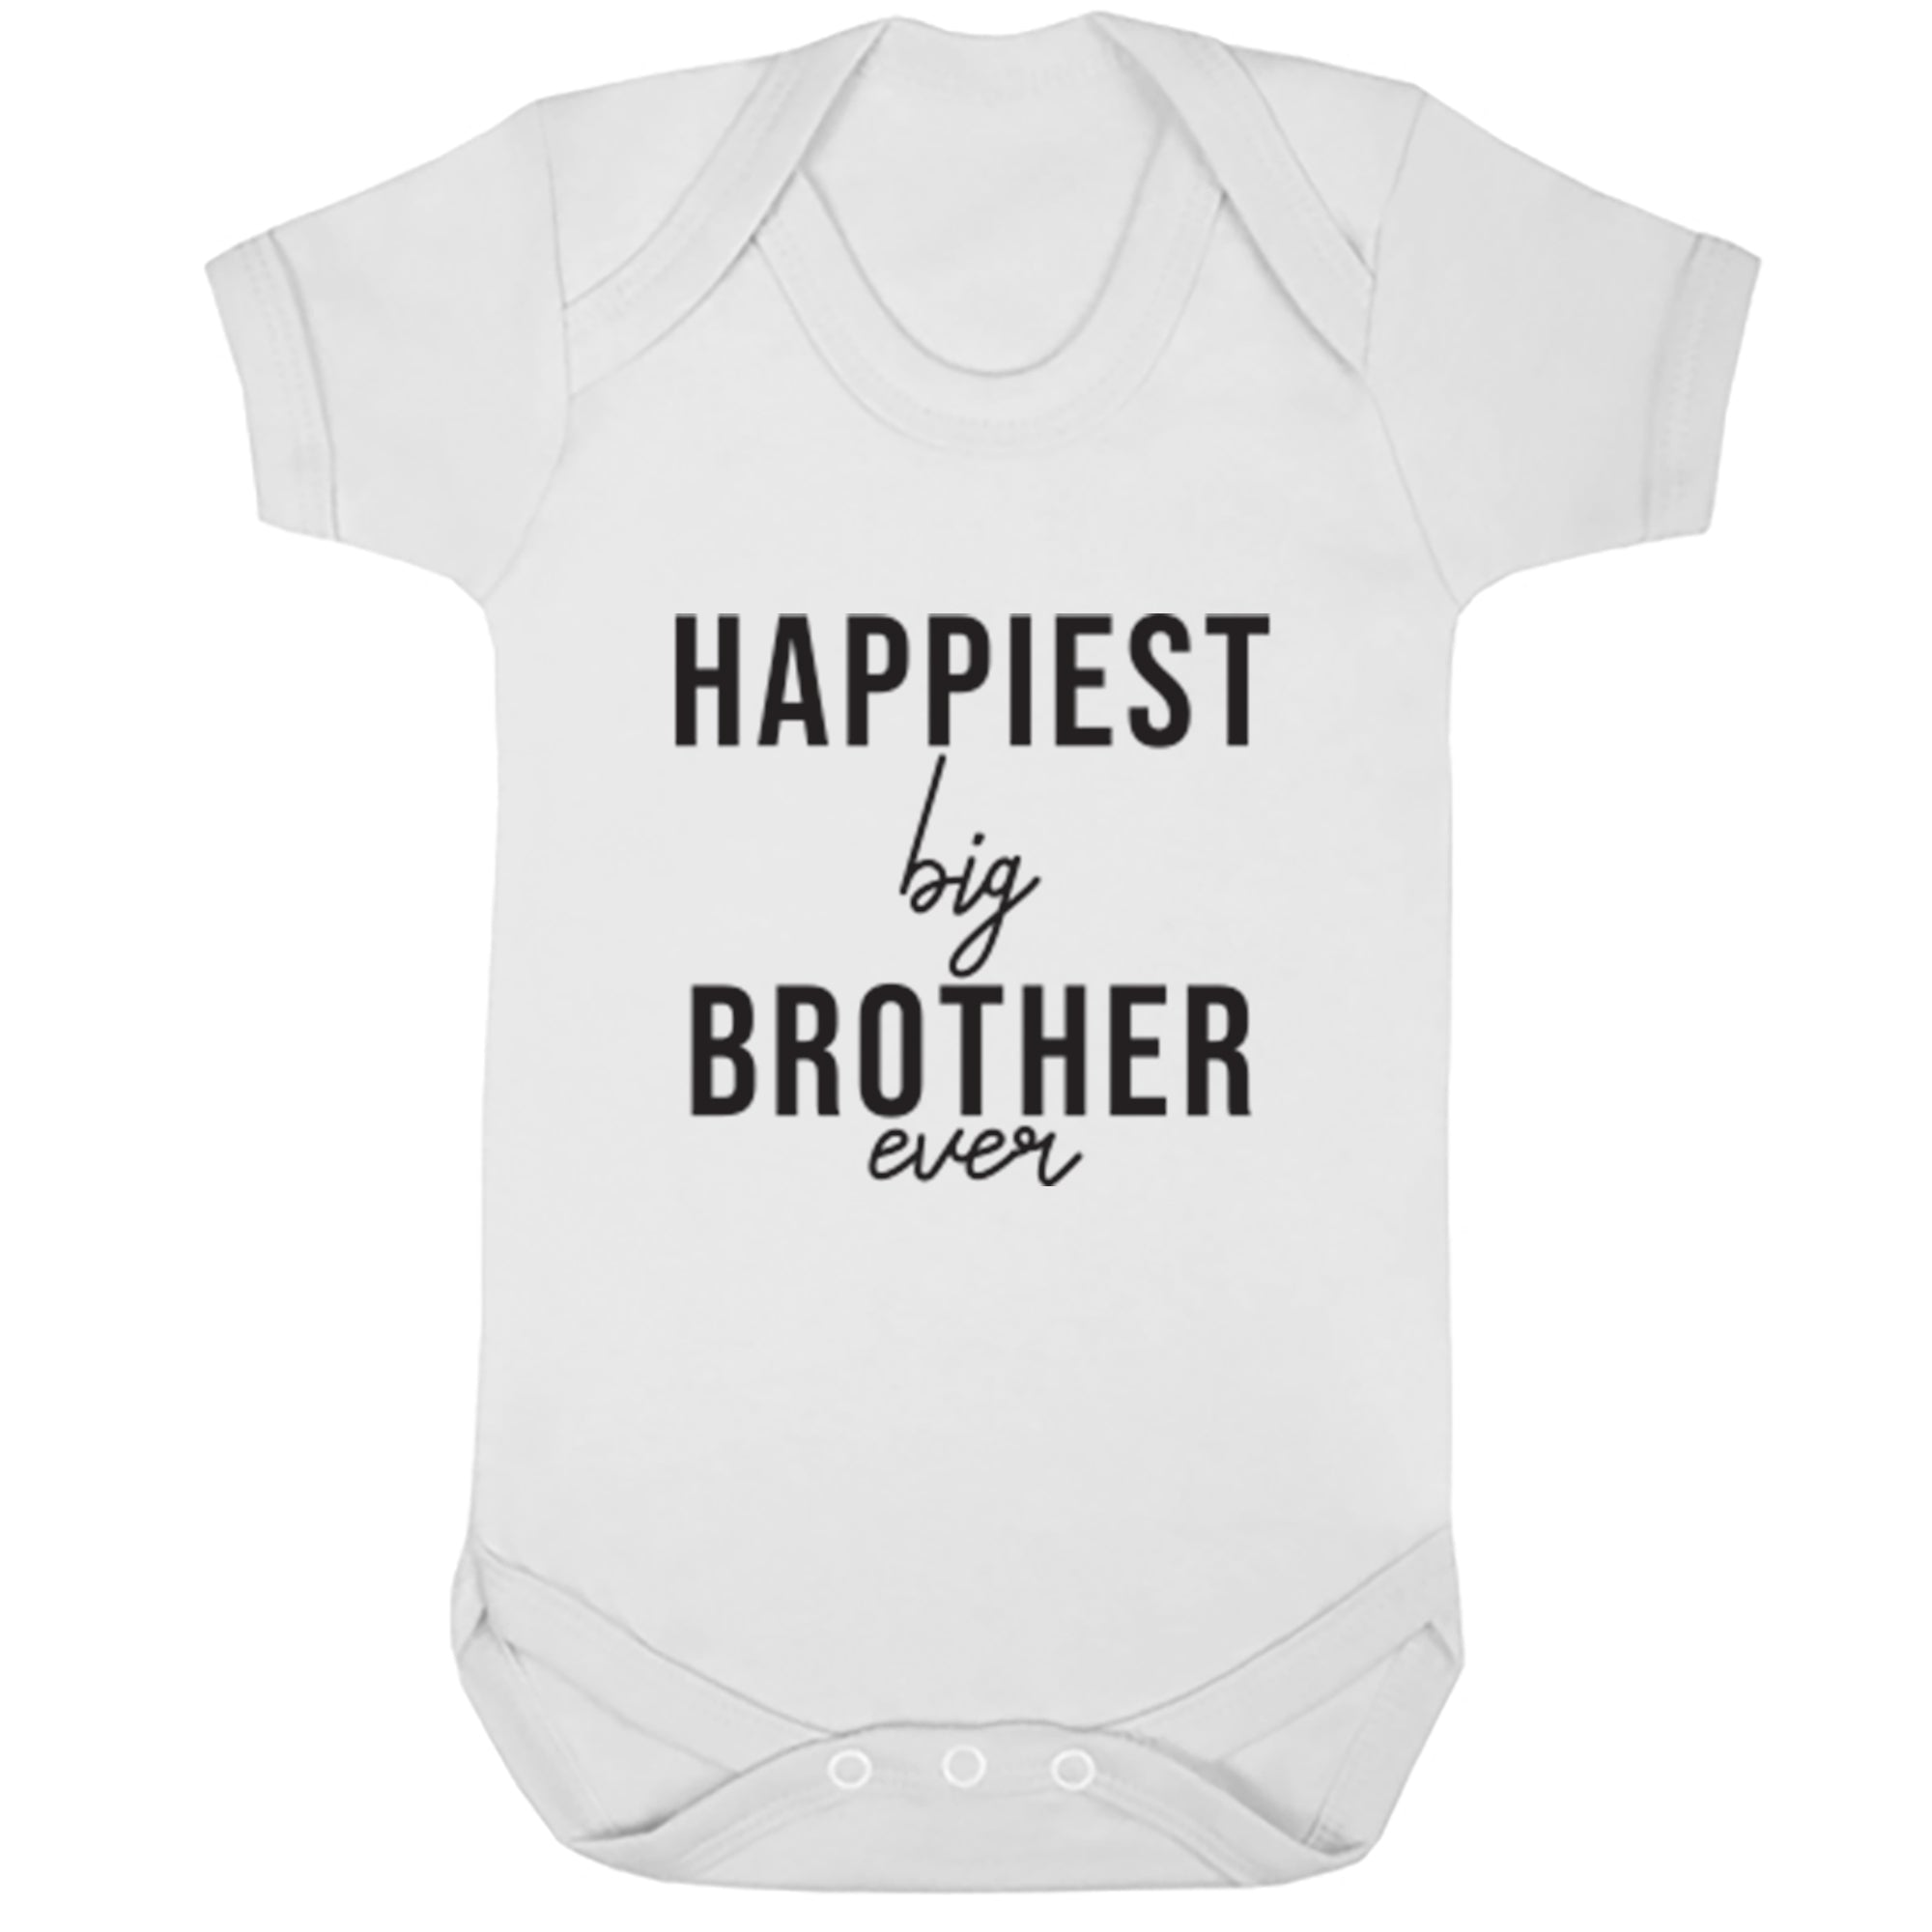 Happiest Big Brother Ever Baby Vest S0527 - Illustrated Identity Ltd.